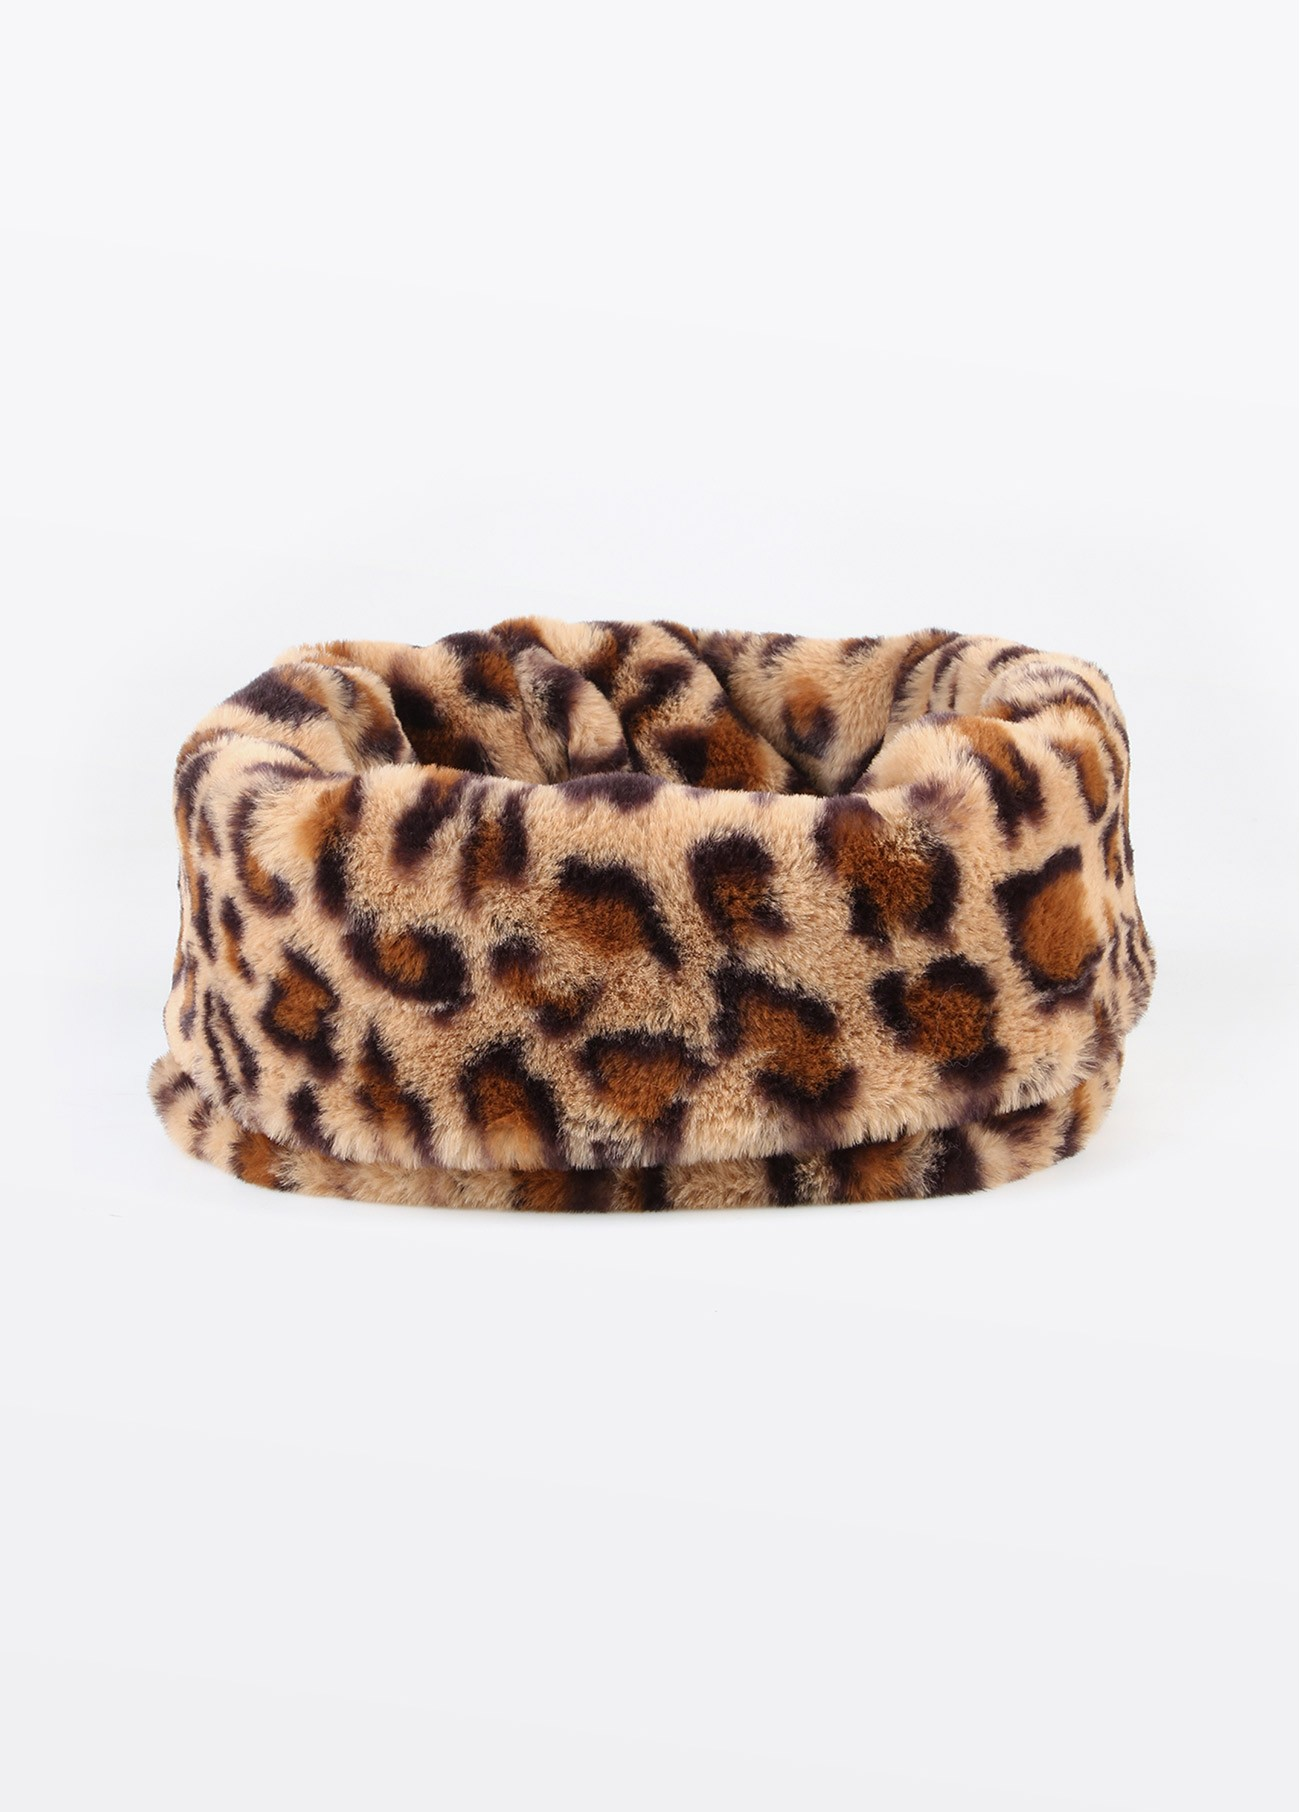 Cuello fake fur leopardo, estampado 2